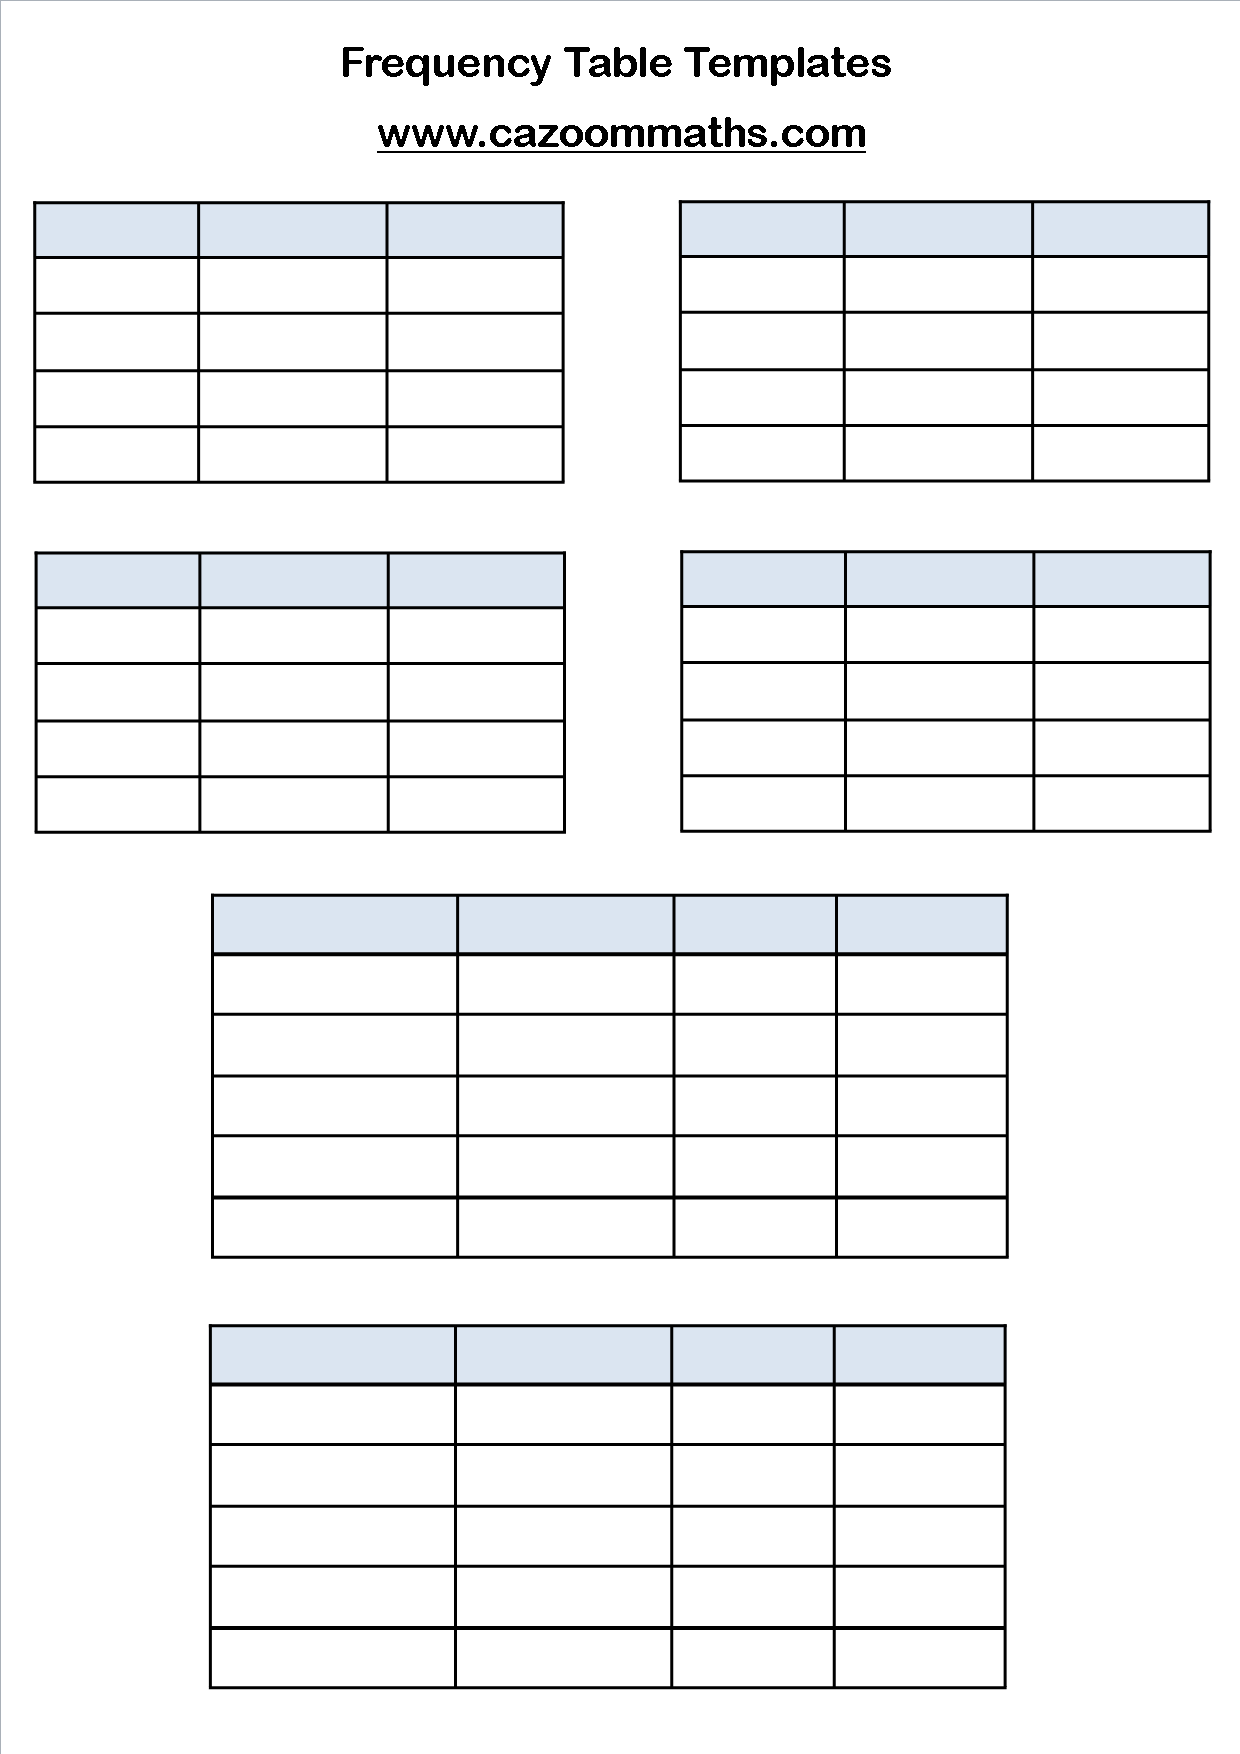 Statistics teaching resources ks3 and ks4 statistics for Frequency table template